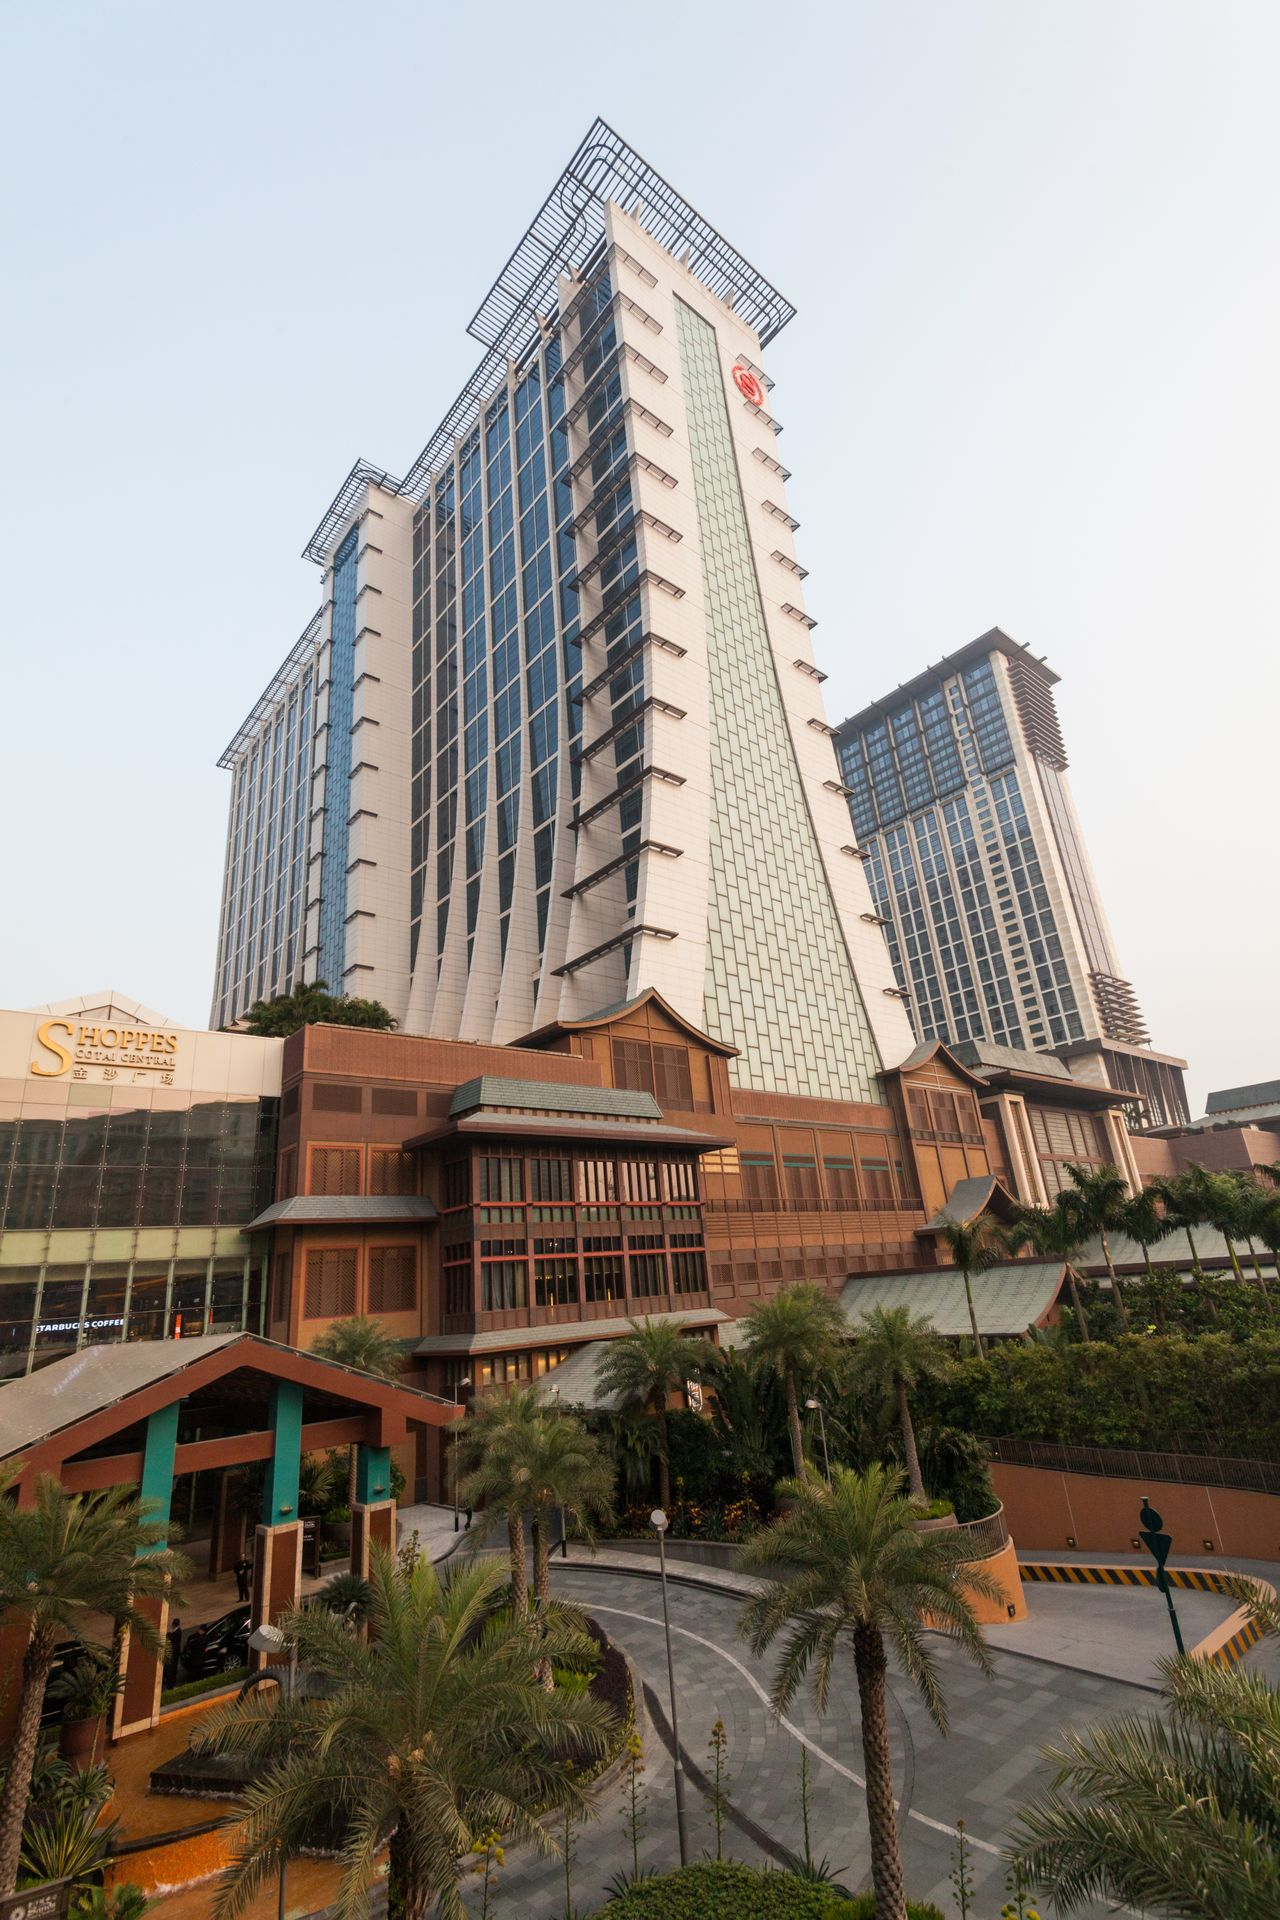 Sands Cotai Central is a casino resort on the Cotai Strip, including the world's largest Holiday Inn, Conrad, and Sheraton Casino Casino Night Conrad Cotai Cotai Strip CotaiStripMacau Entertainment Holiday Inn Macao  Macao China Macau Macau, China Sands Sheraton